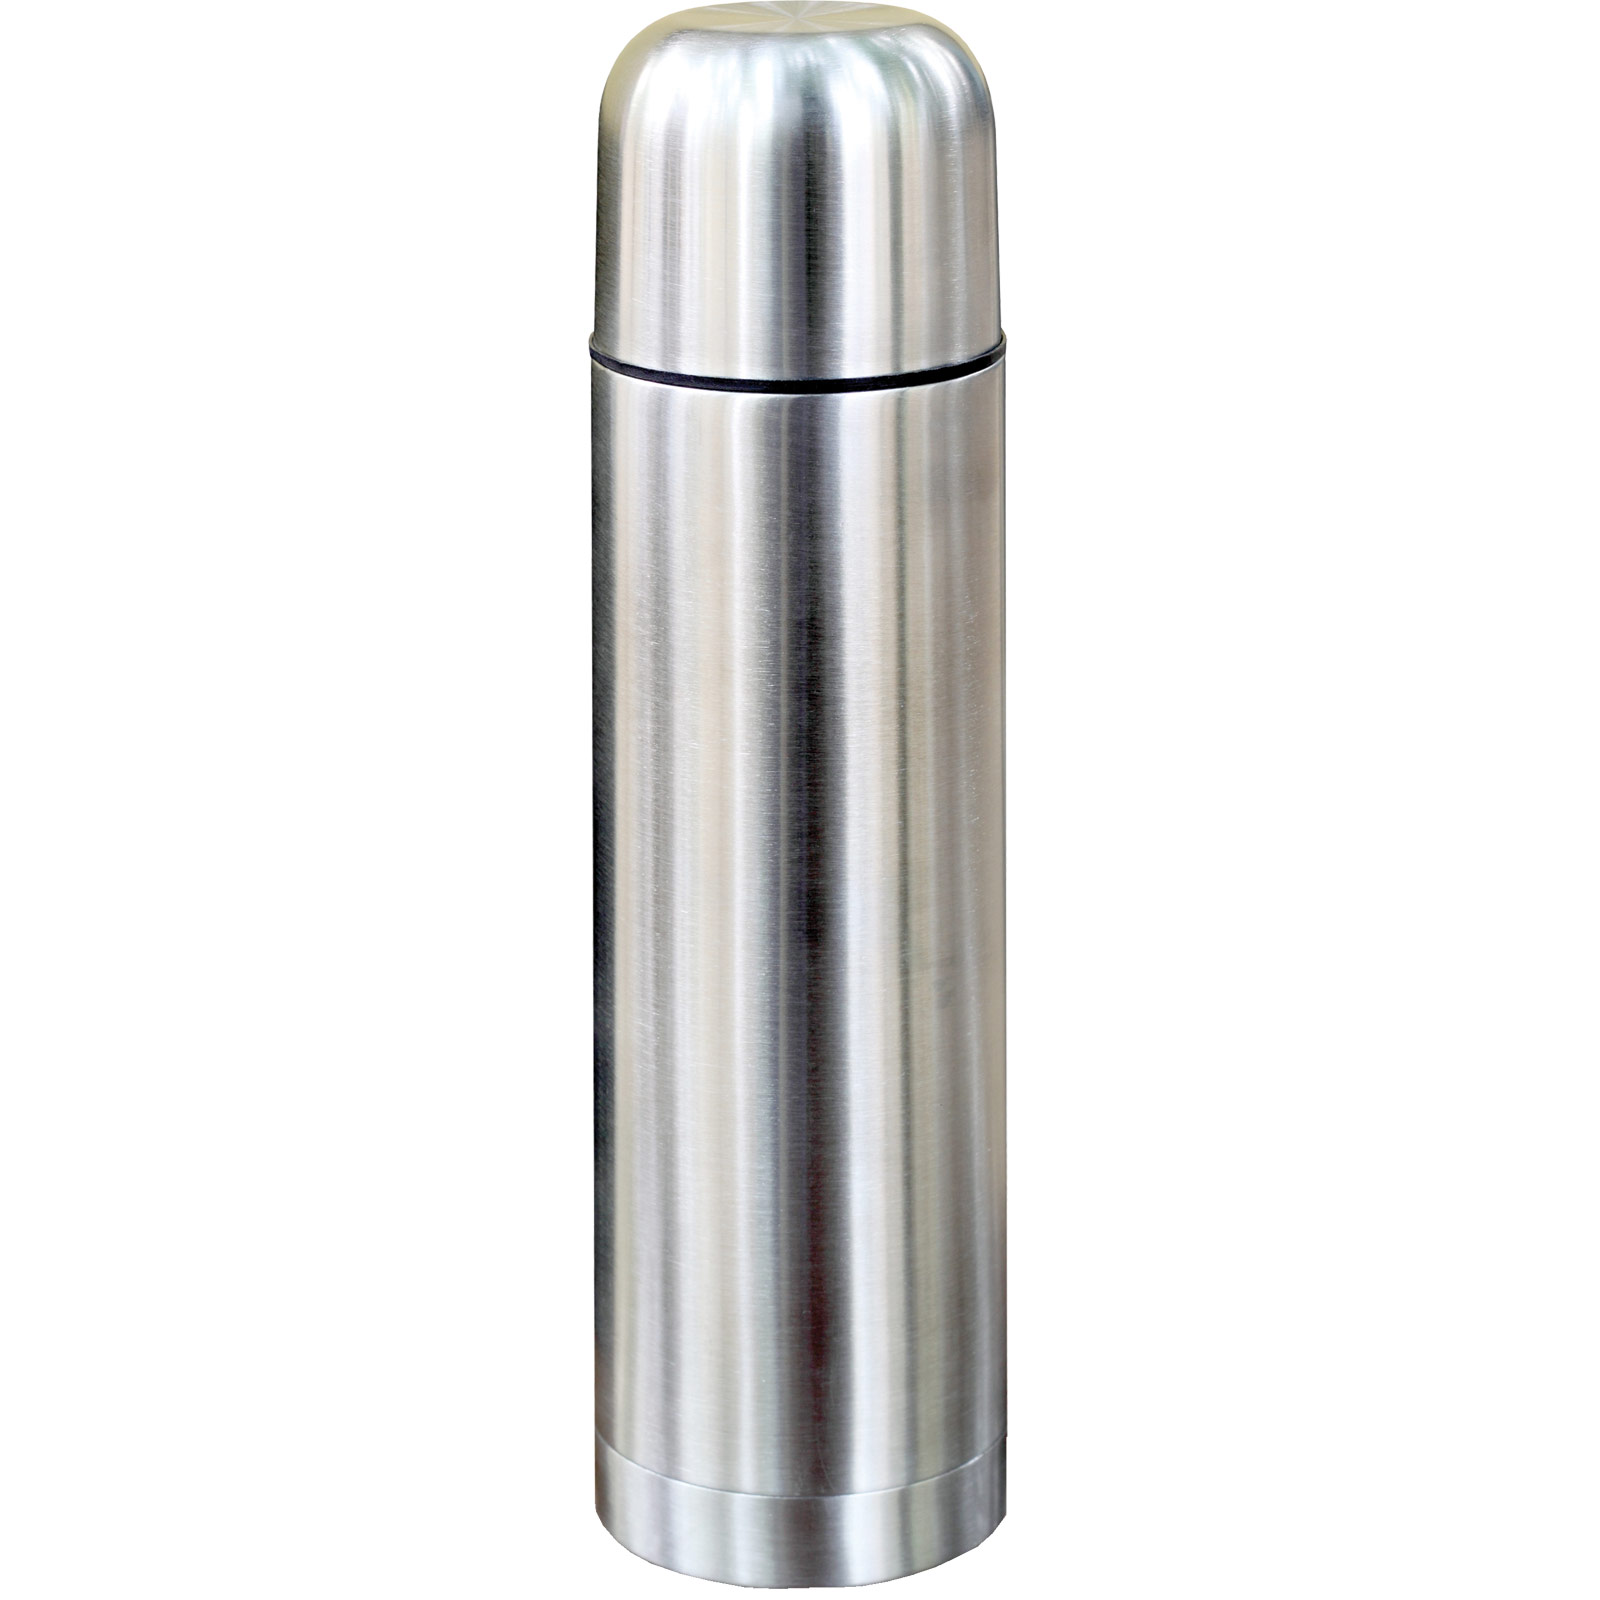 new azuma stainless steel vacuum thermos bullet flask 1l 750ml 500ml 350ml ebay. Black Bedroom Furniture Sets. Home Design Ideas